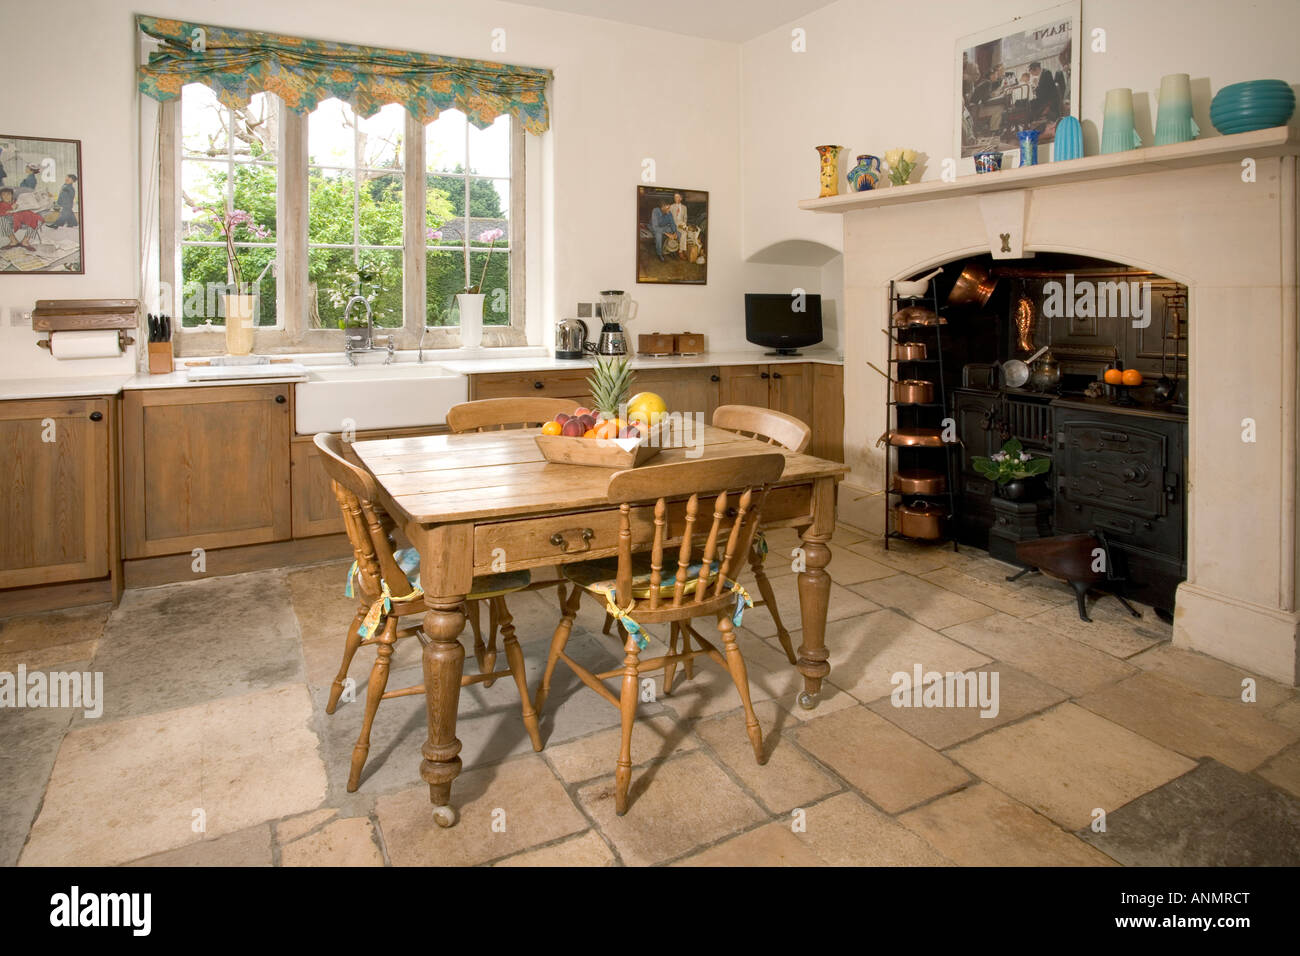 Home interior, simple modern kitchen with dining table and old cooking range feature. - Stock Image